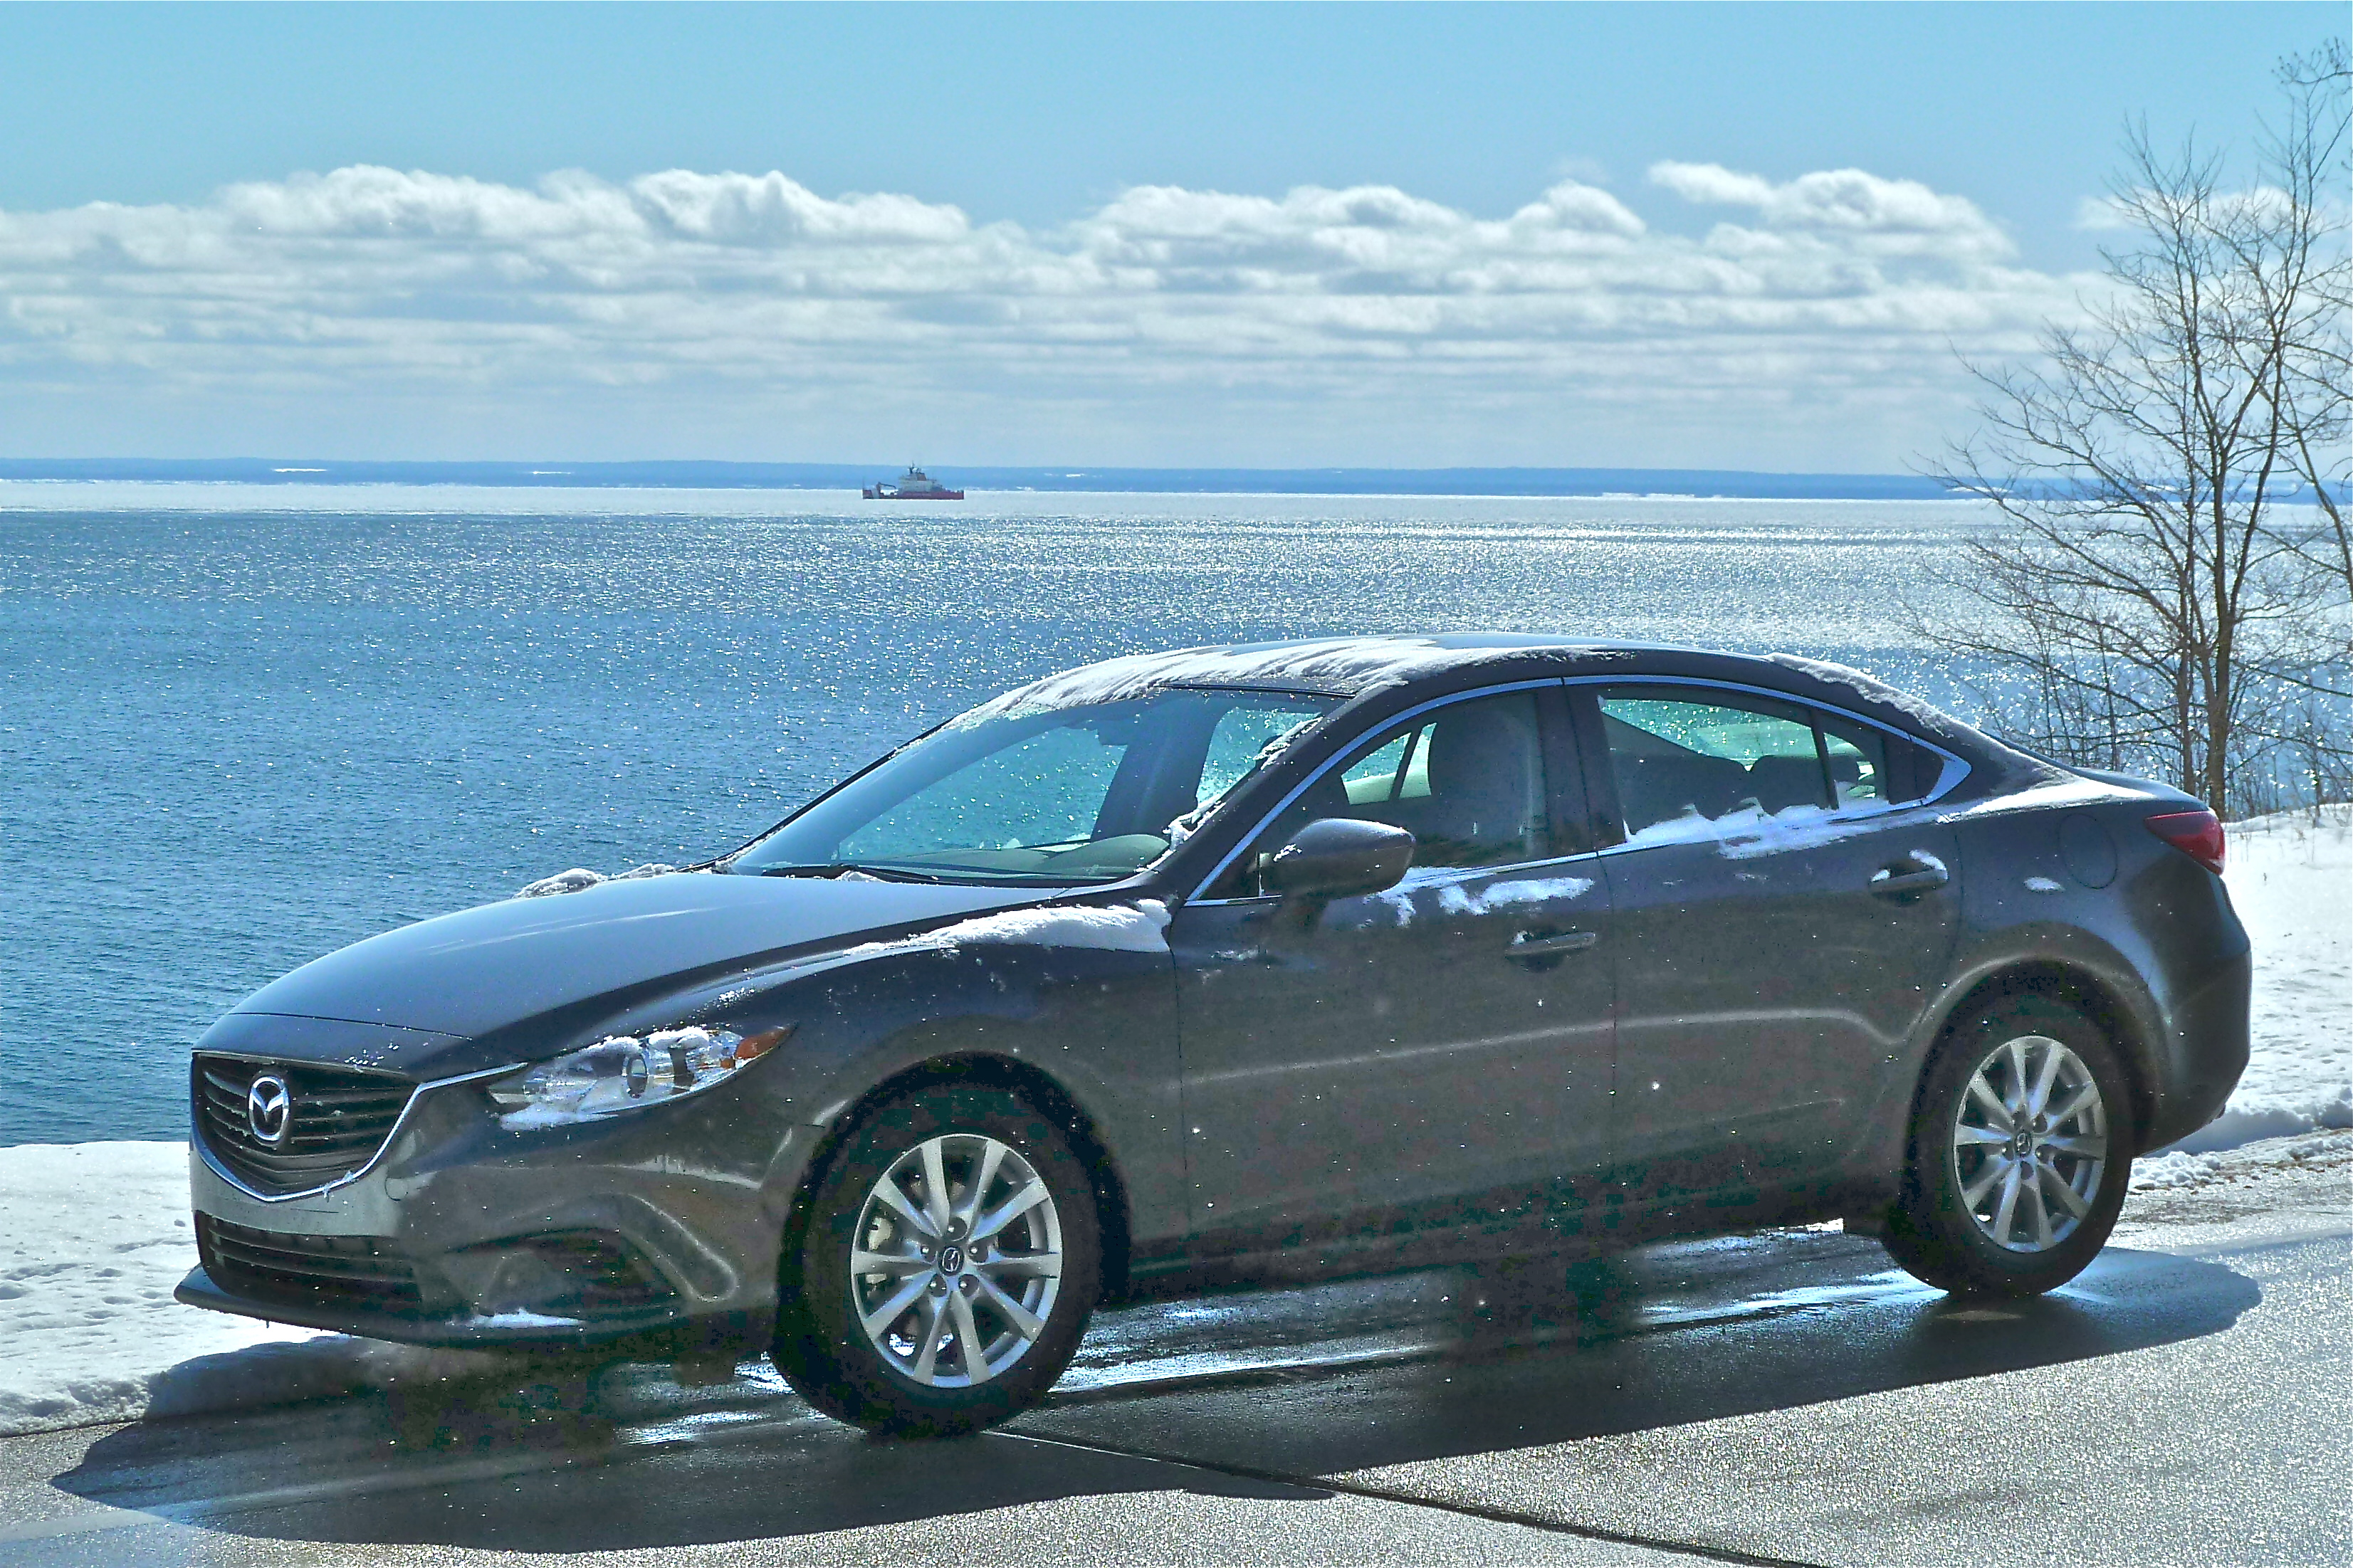 Restyled Mazda6 performed well in late-winter test drives on Minnesota